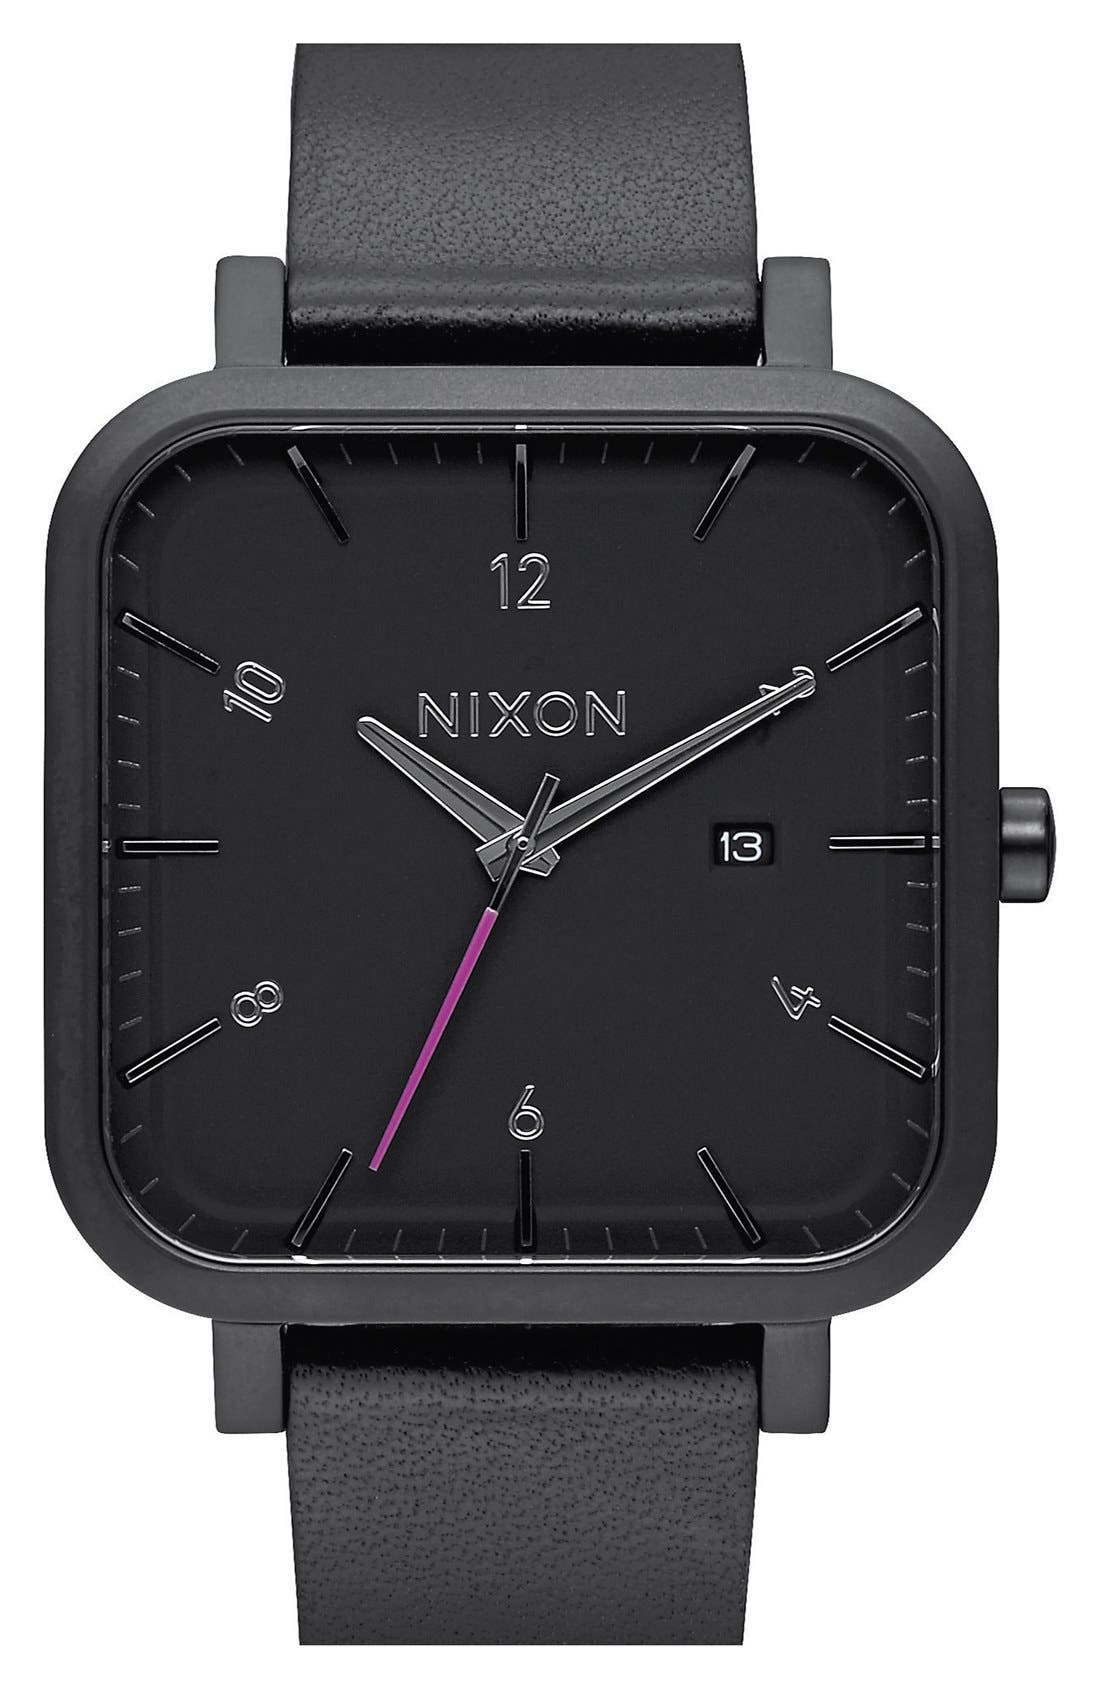 Main Image - Nixon 'Ragnar' Square Leather Strap Watch, 40mm x 40mm